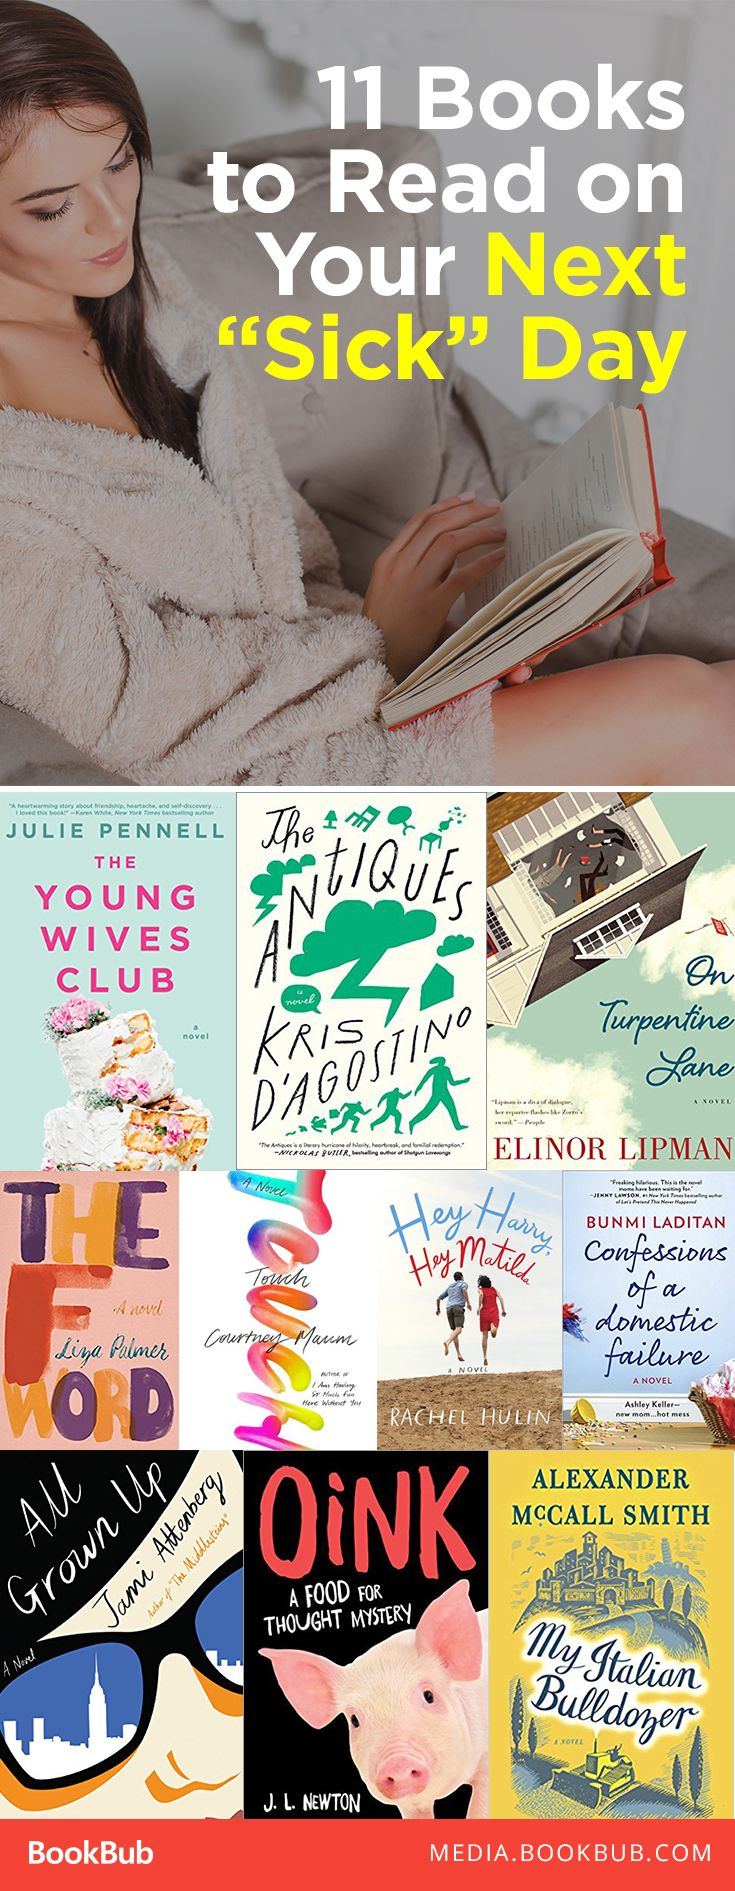 "11 books to read on your next ""sick"" day, including funny books to read that are sure to make you laugh out loud!"